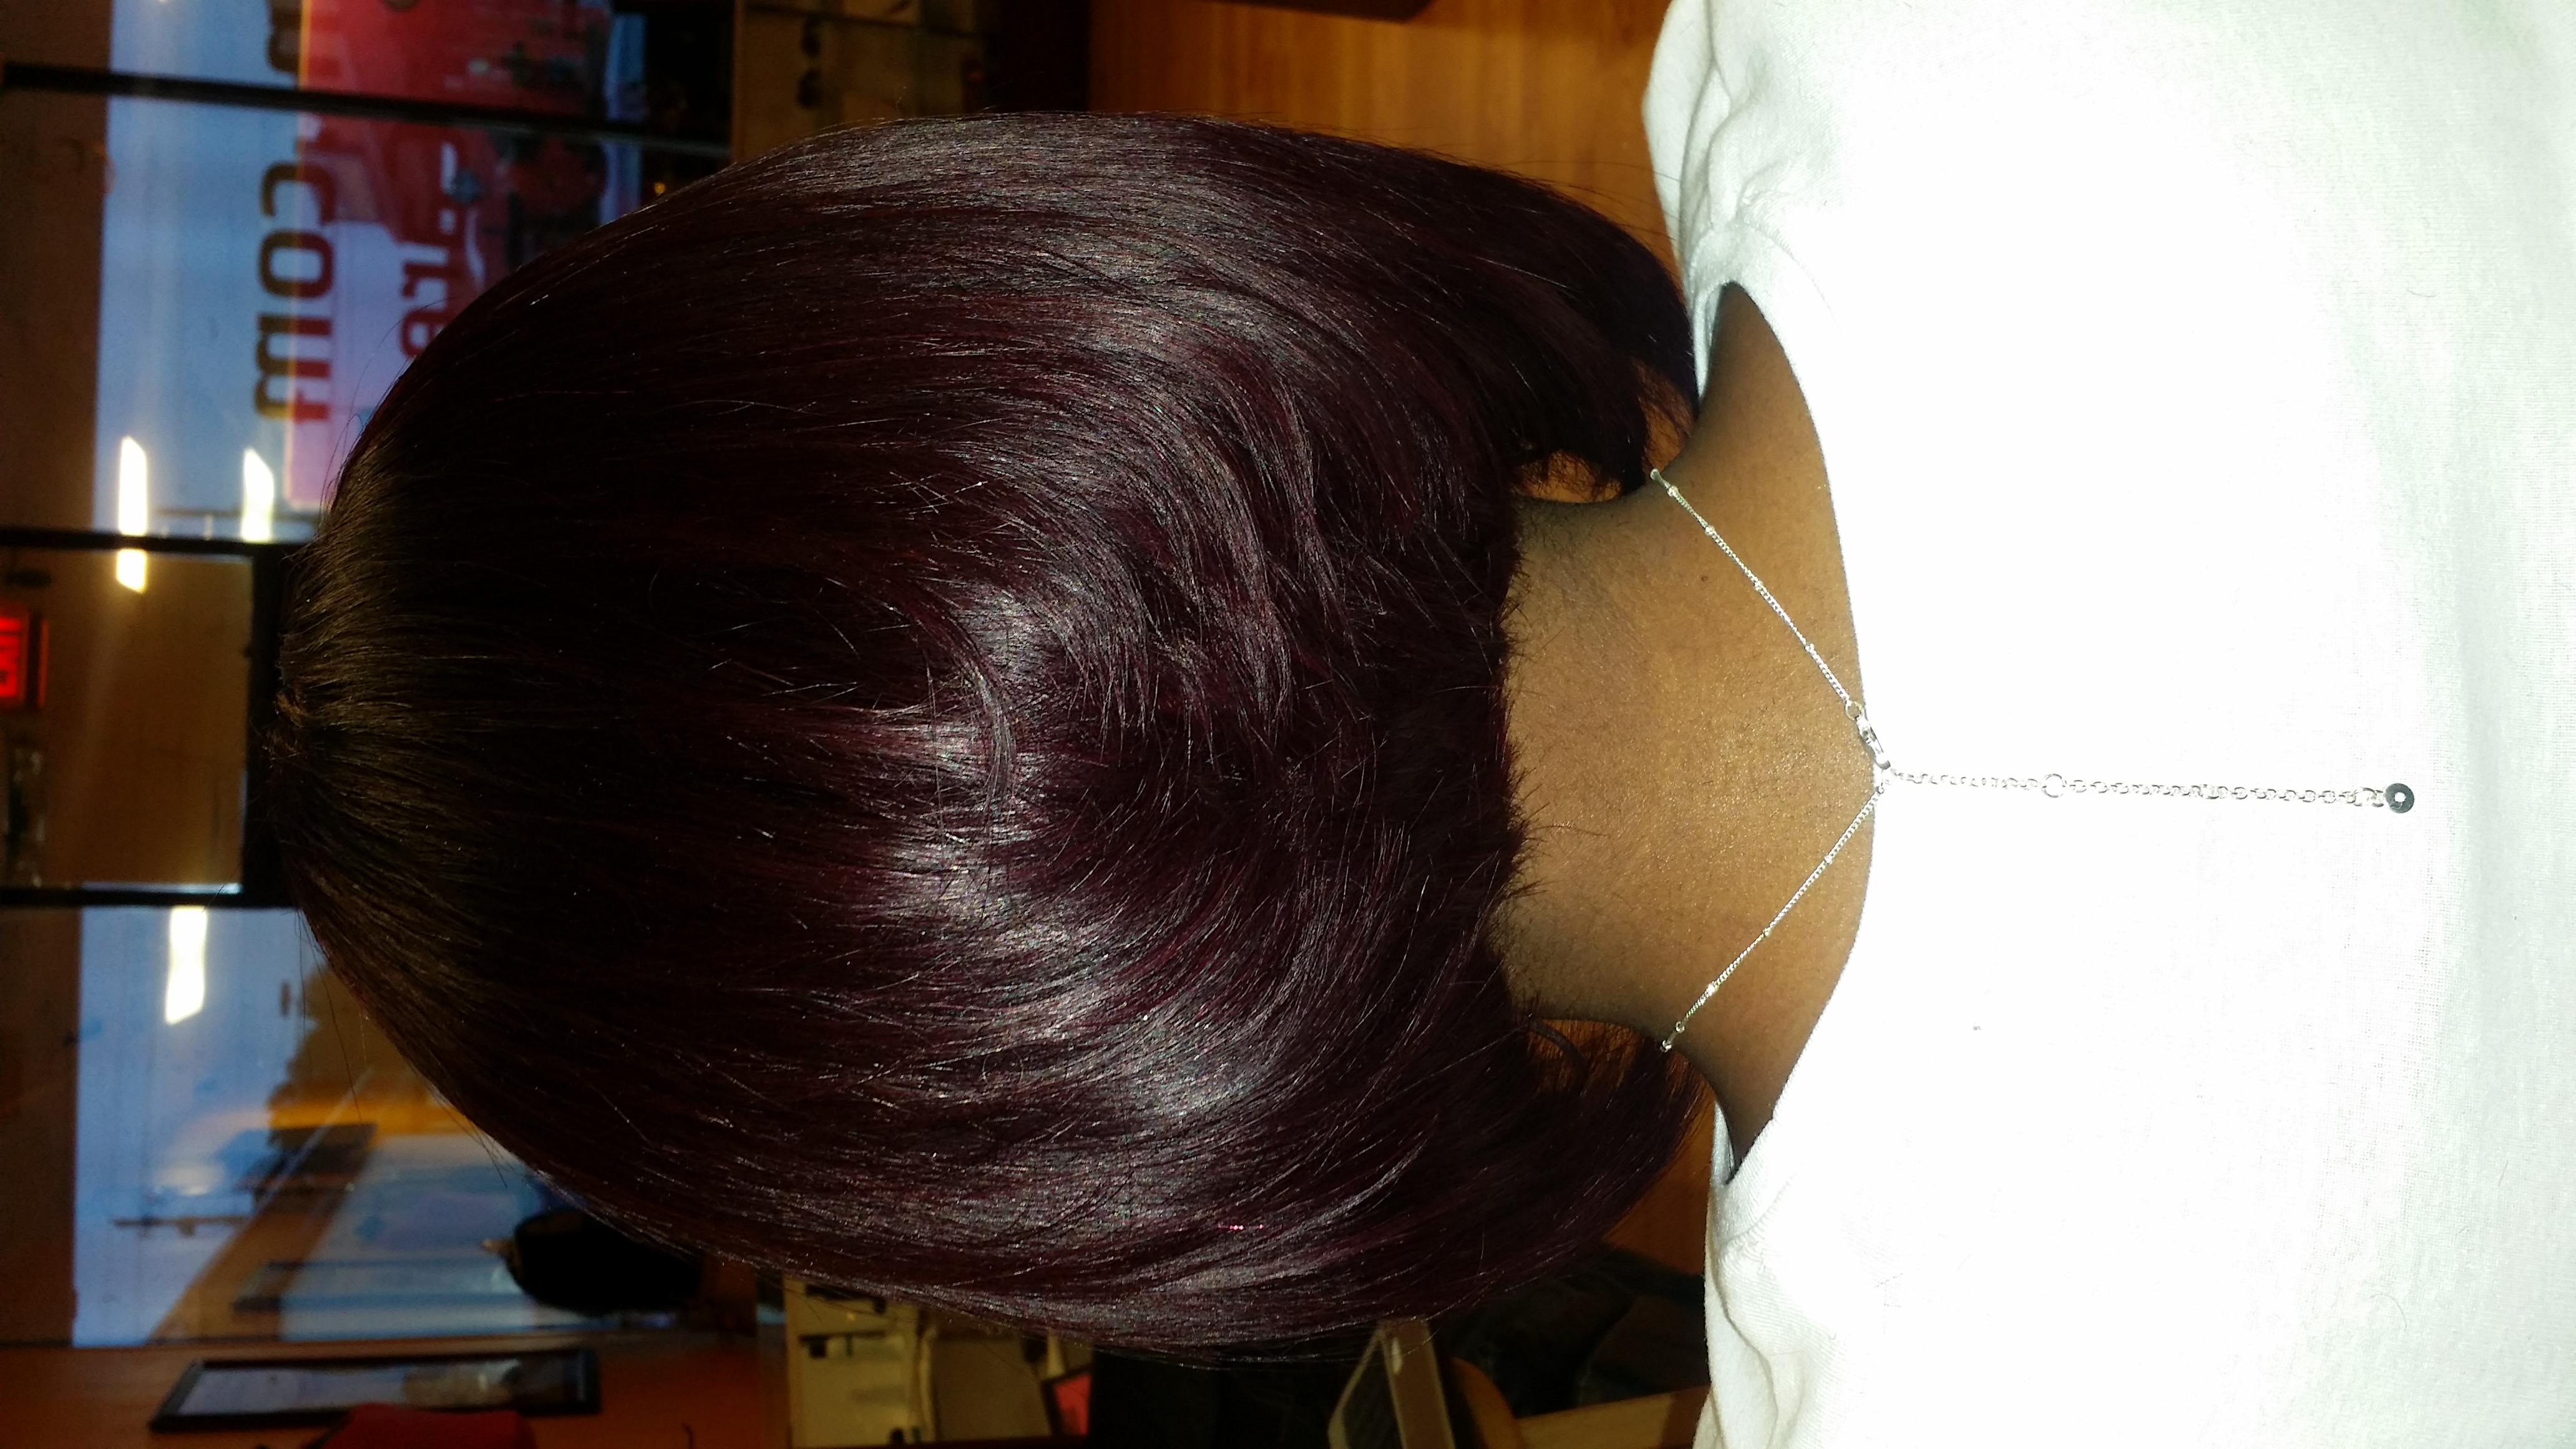 _storage_extSdCard_DCIM_Pictures_Hairstyles_20151231_165638